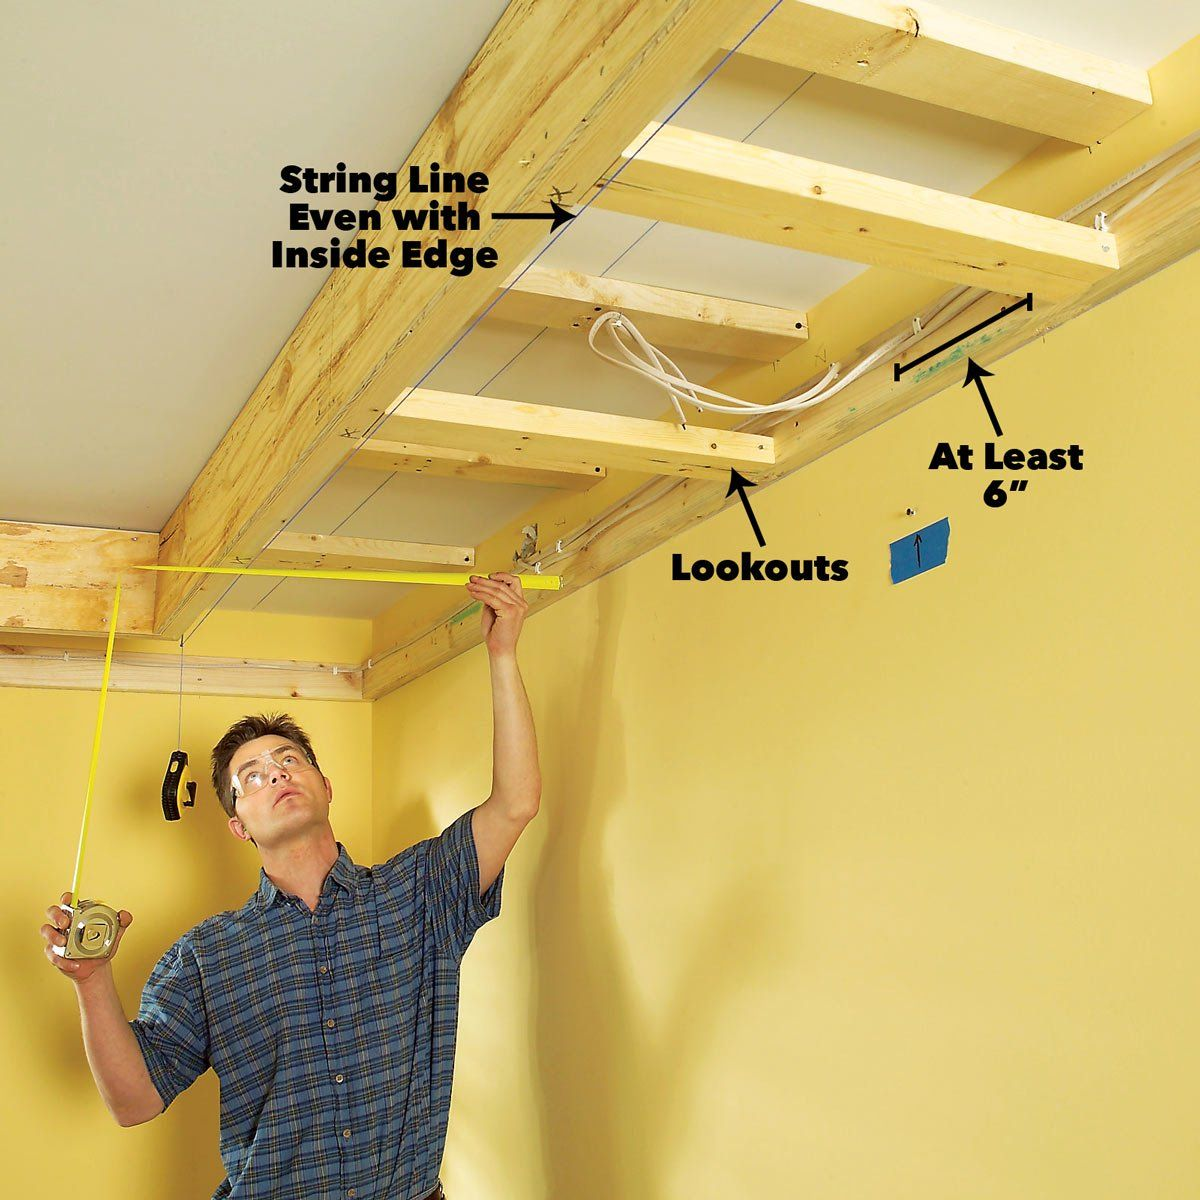 How To Build A Soffit Box With Recessed Lighting Recessed Lighting Installing Recessed Lighting Kitchen Soffit